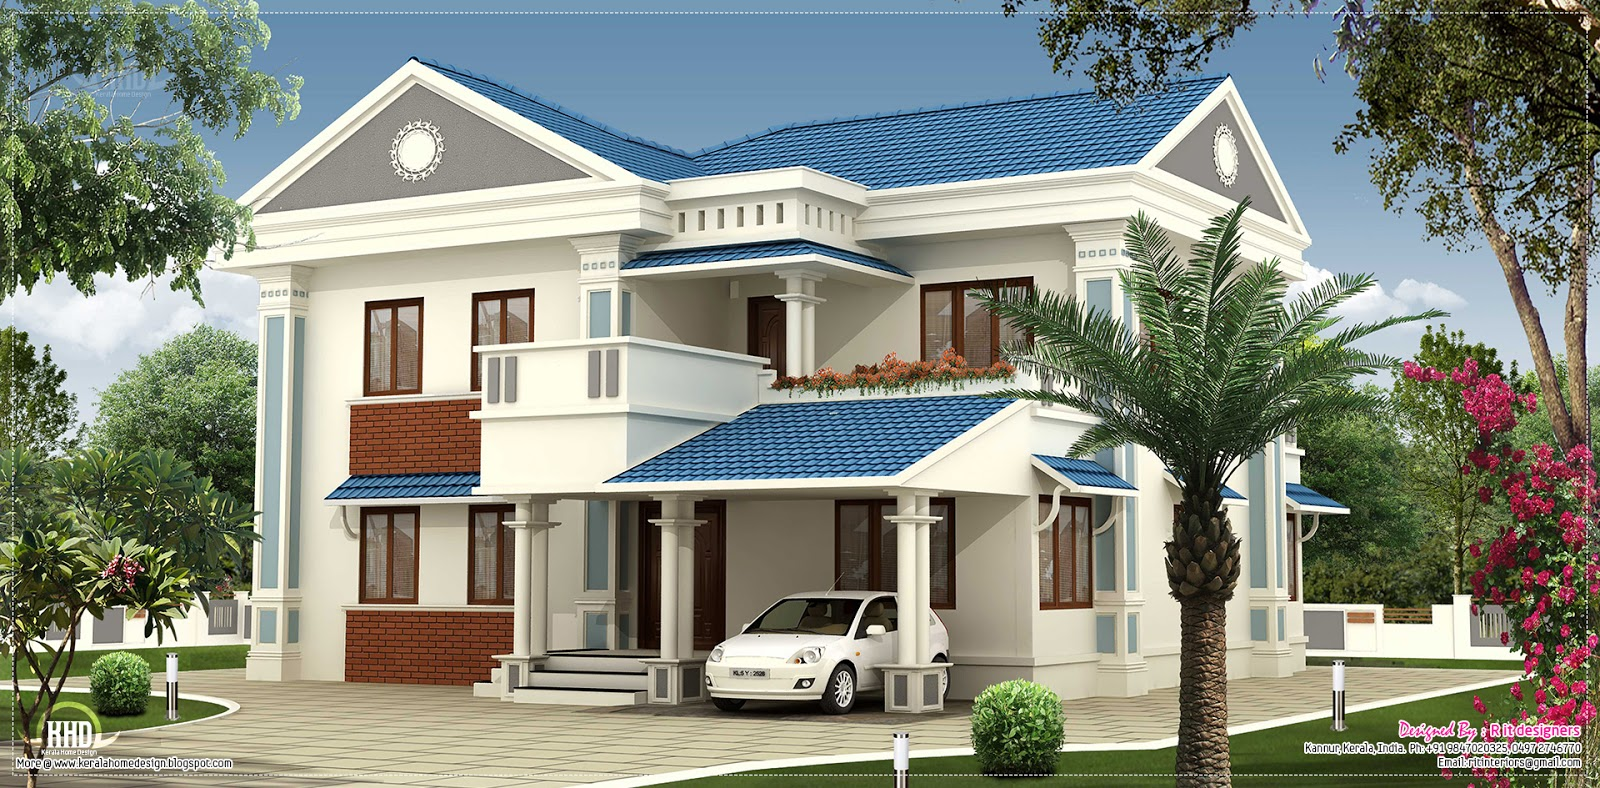 2000 beautiful villa elevation design house design plans - Calculating square footage of a house pict ...